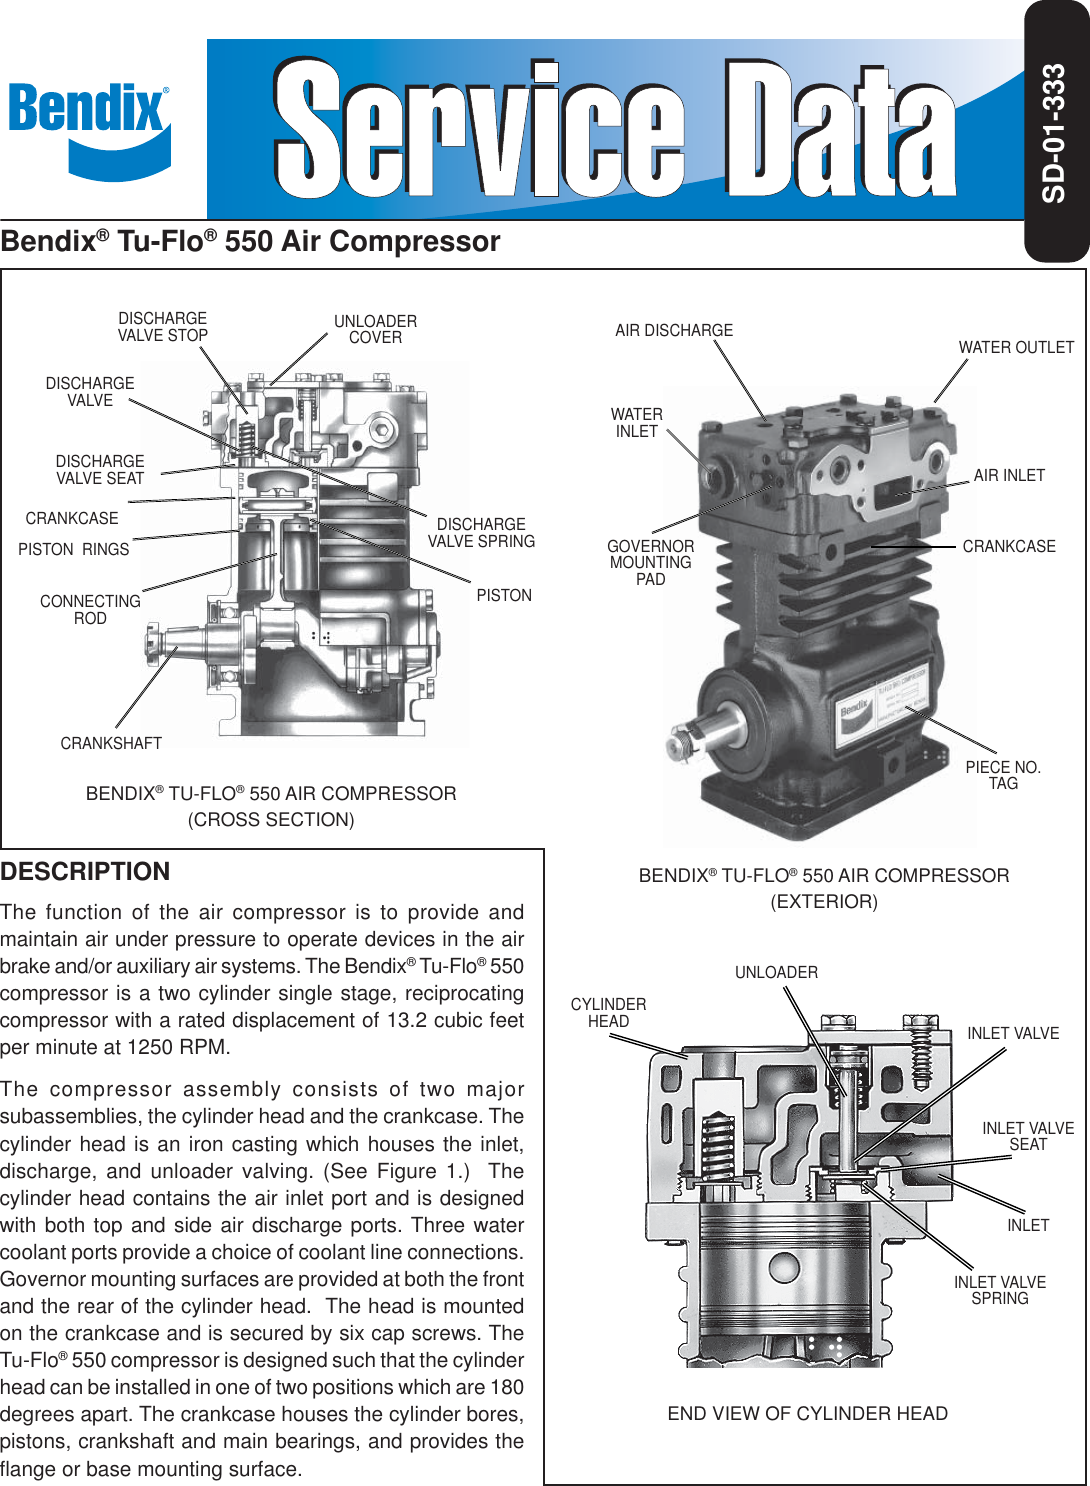 Bendix Tu Flo 550 Compressor Users Manual Manualslib Makes It Easy To Find Manuals Online